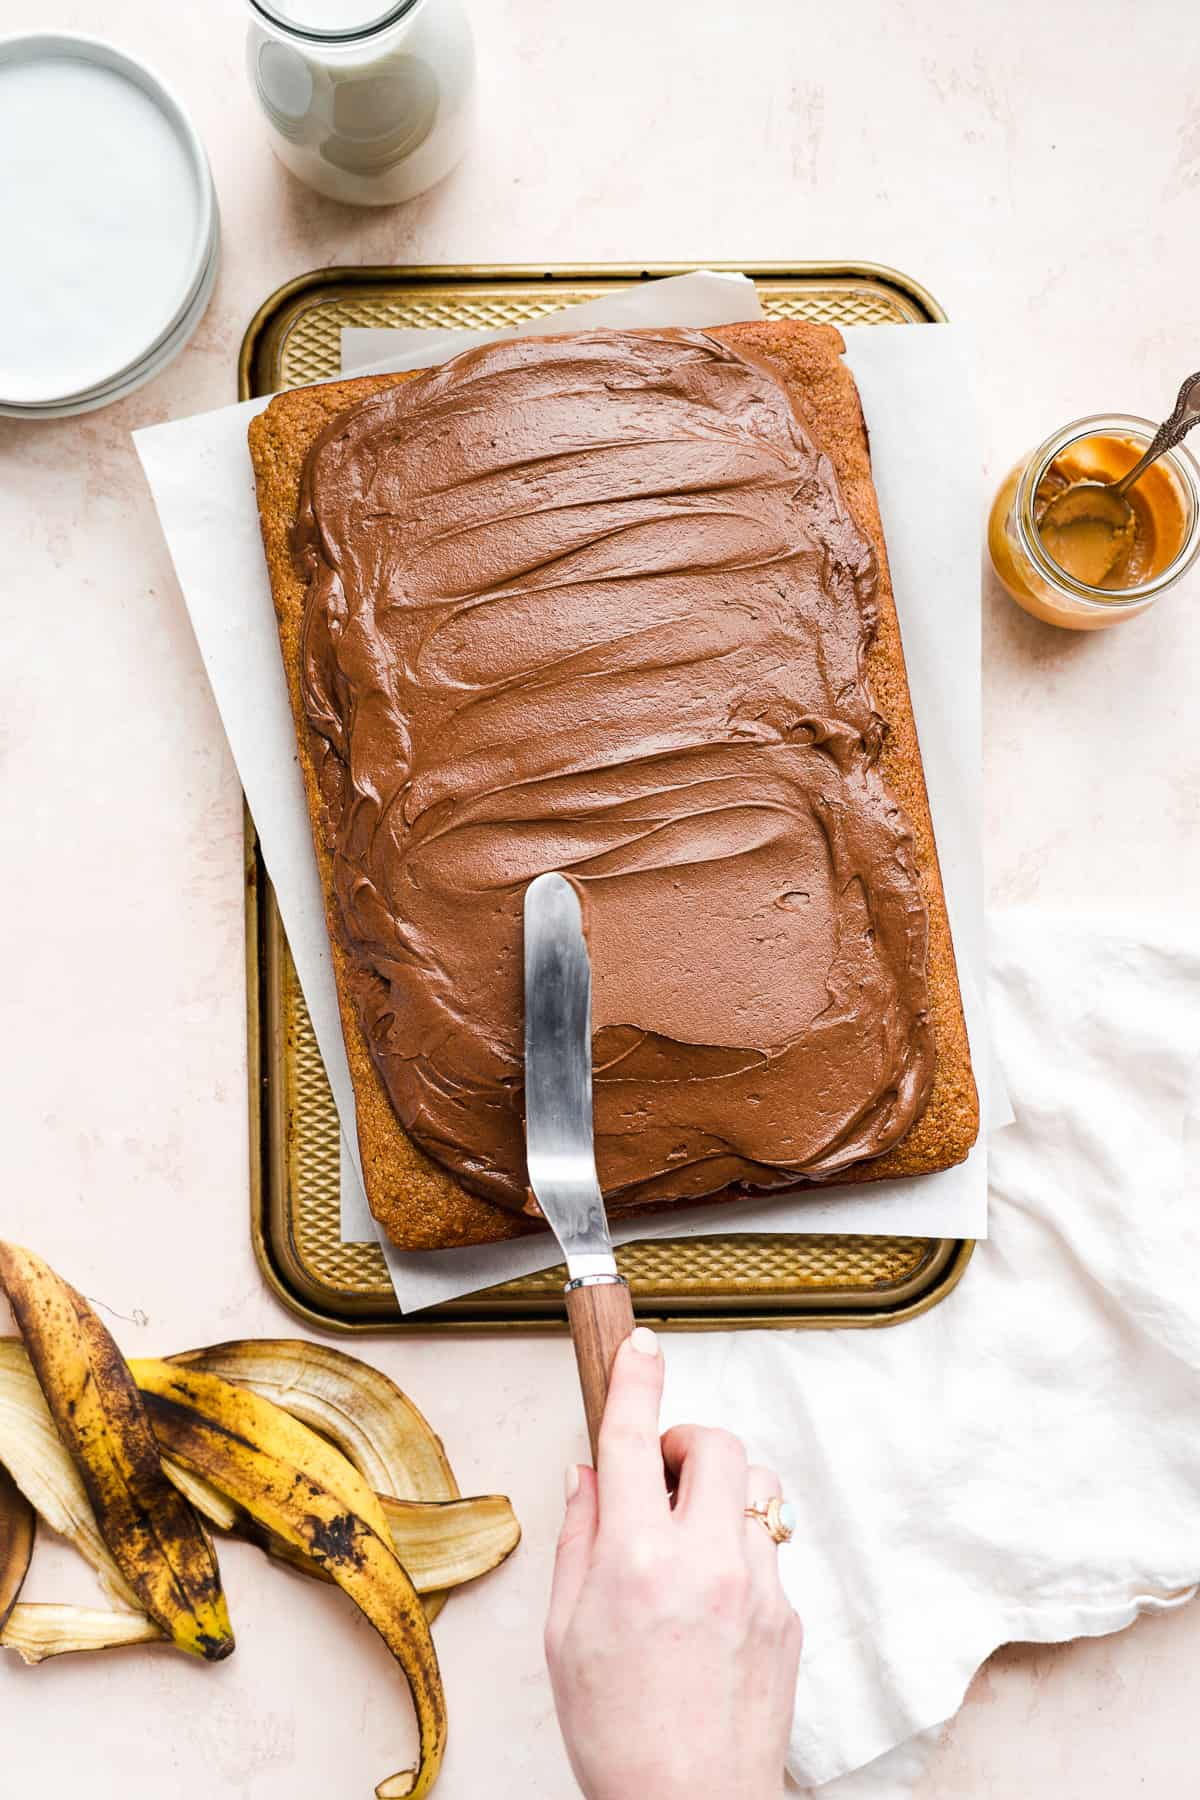 Hand spreading chocolate frosting over top of a cake.